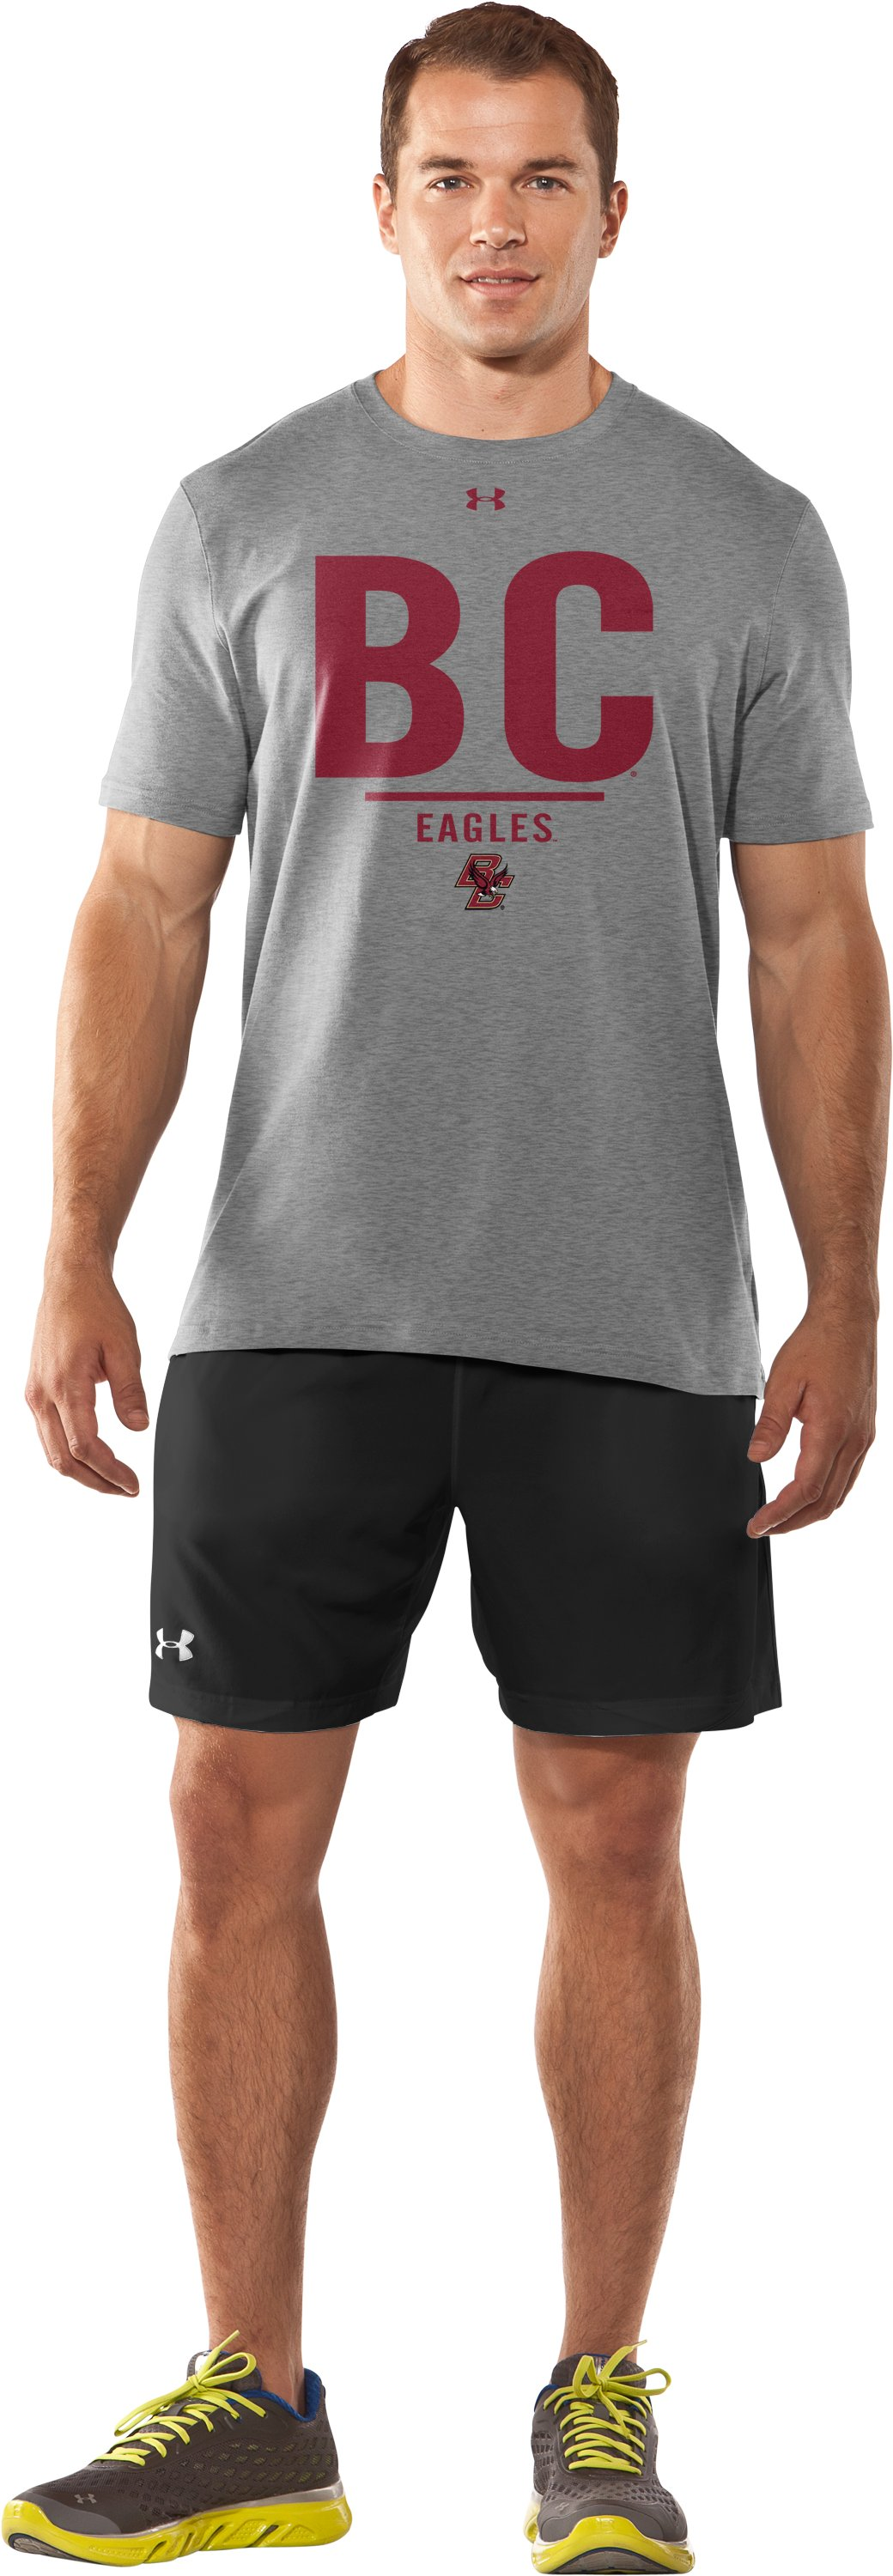 Men's Boston College Charged Cotton® T-Shirt, True Gray Heather, Front